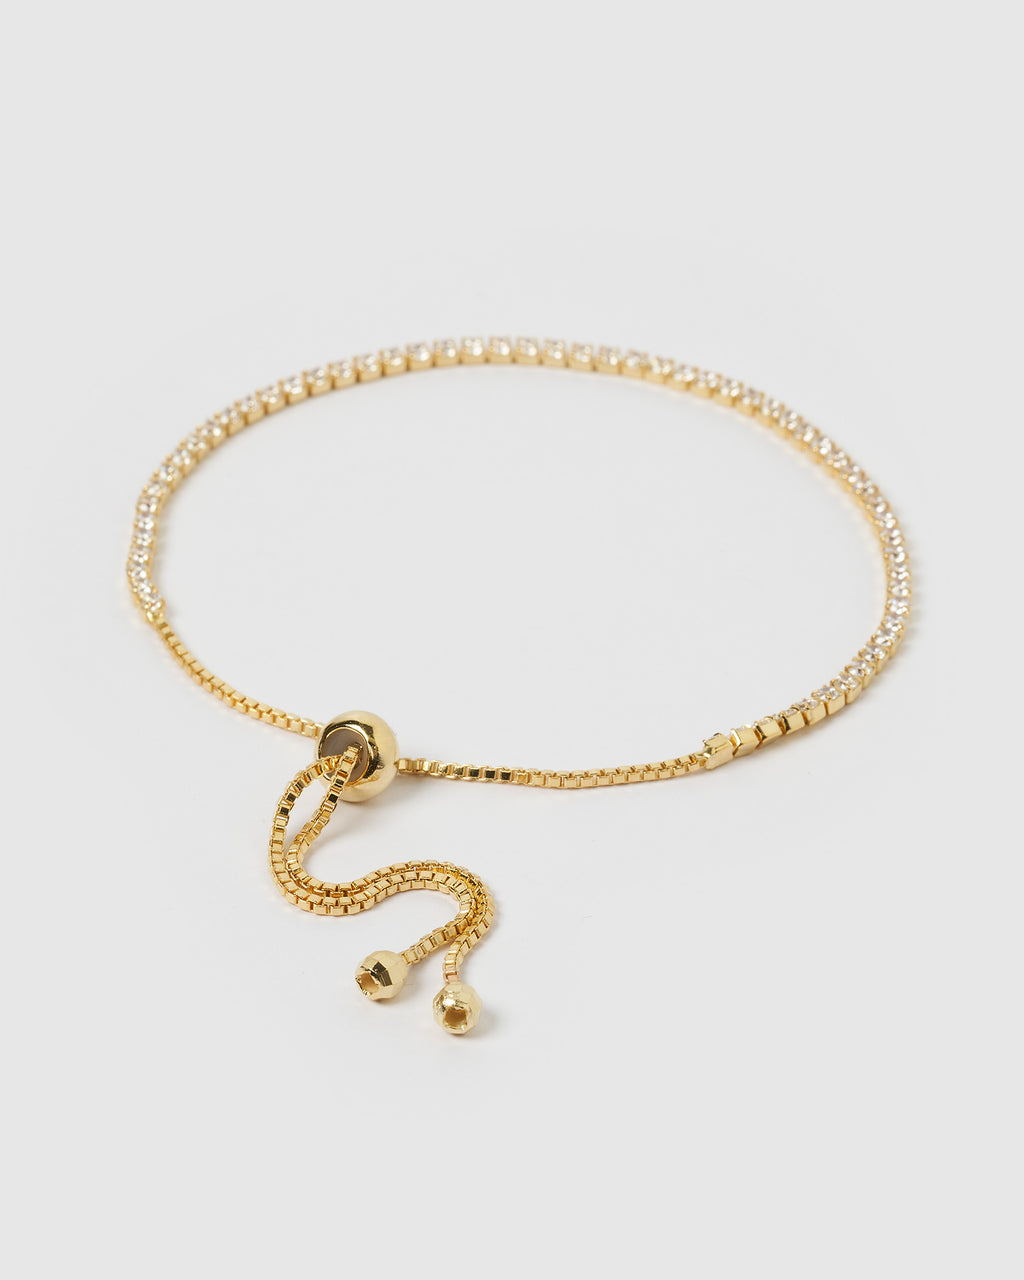 Izoa Gold Crystal Tennis Bracelet